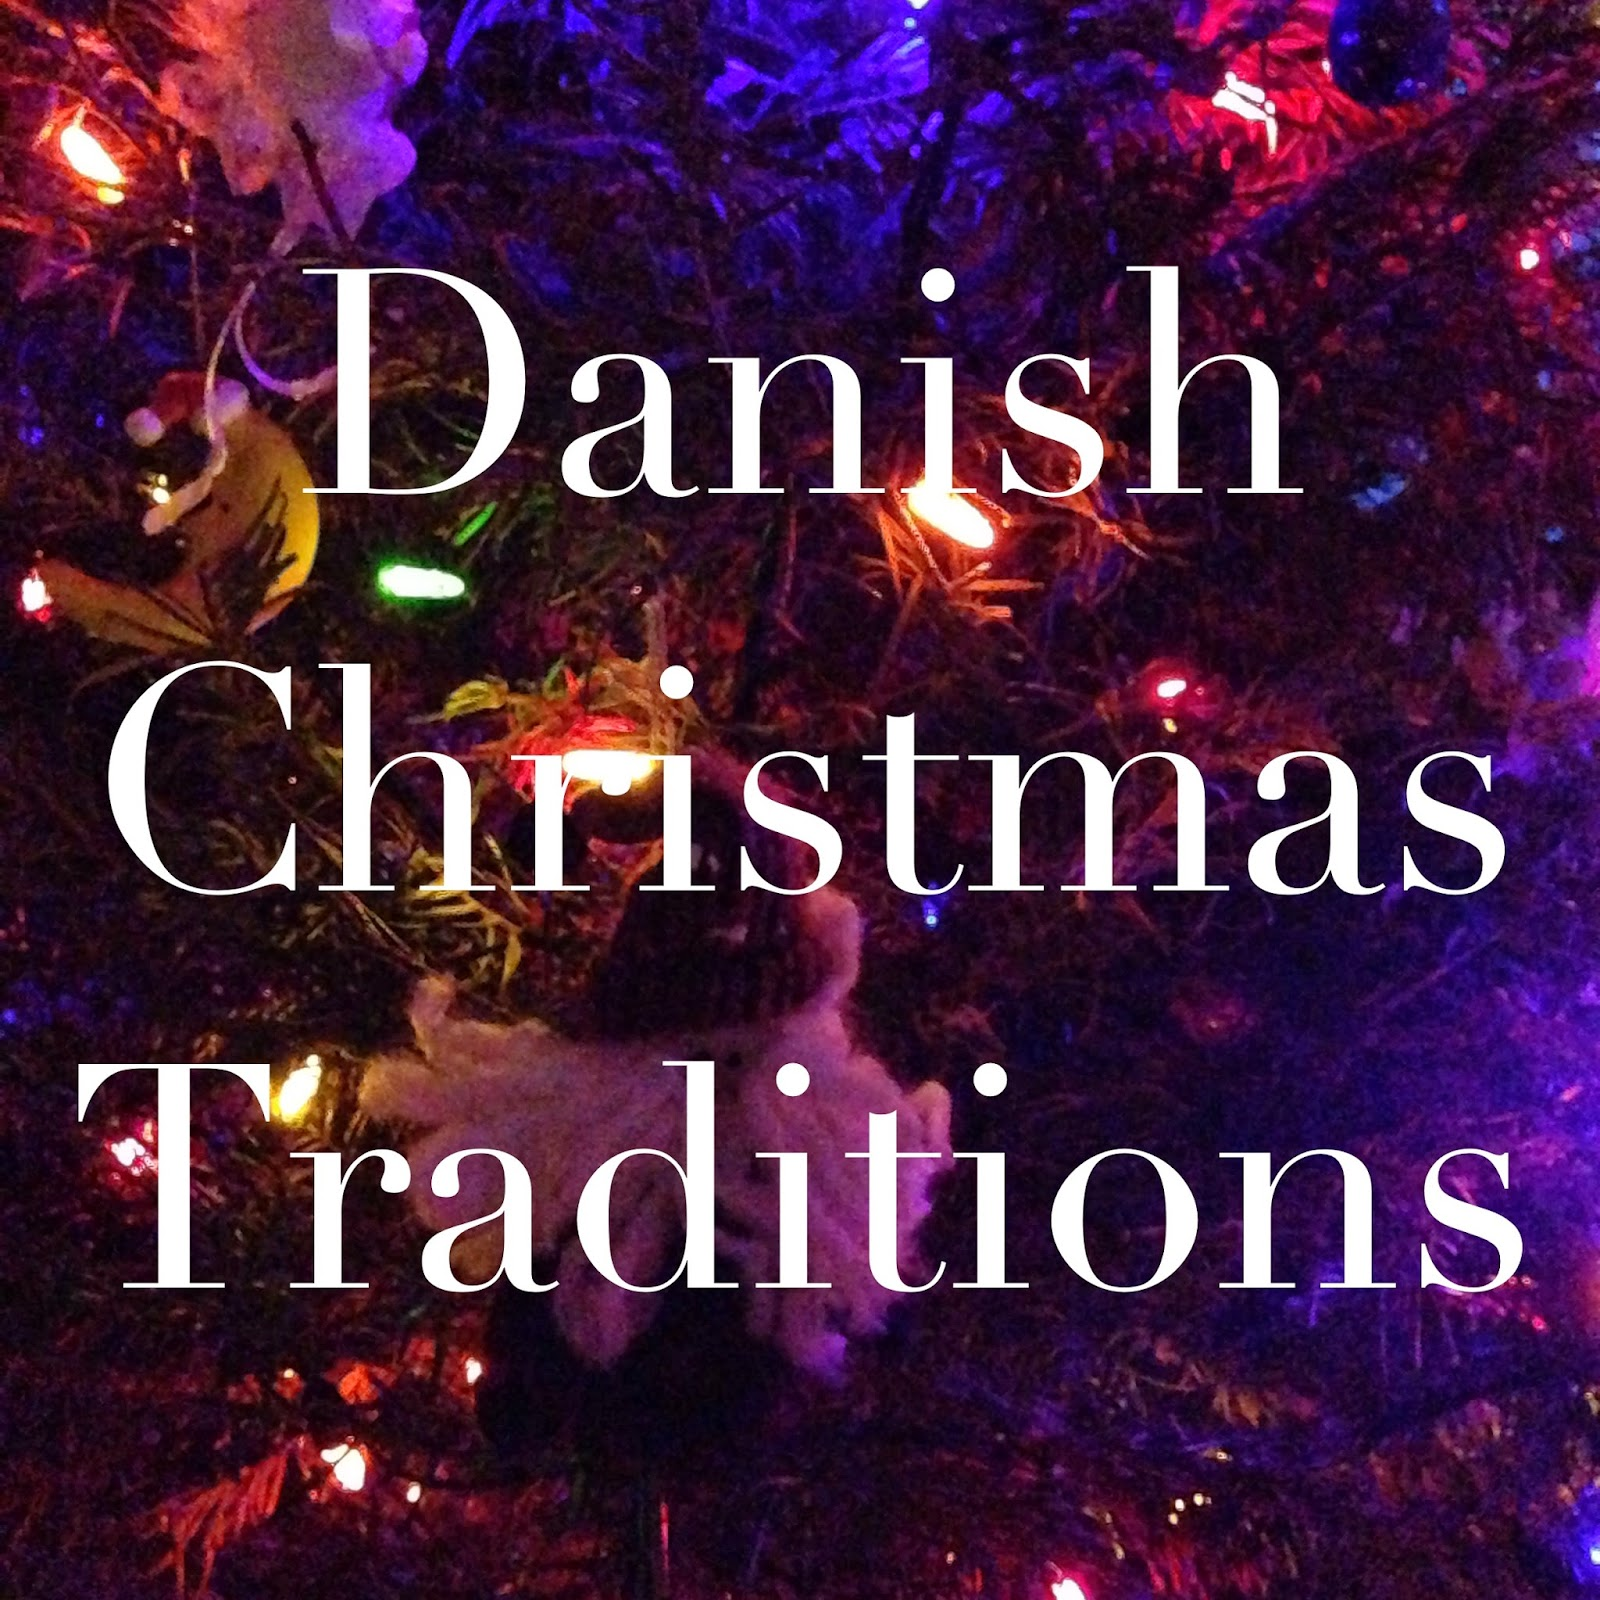 merry christmas eve and gldelig juleaften im so excited today to be sharing some of my favourite christmas traditions from my danish culture - Merry Christmas In Danish